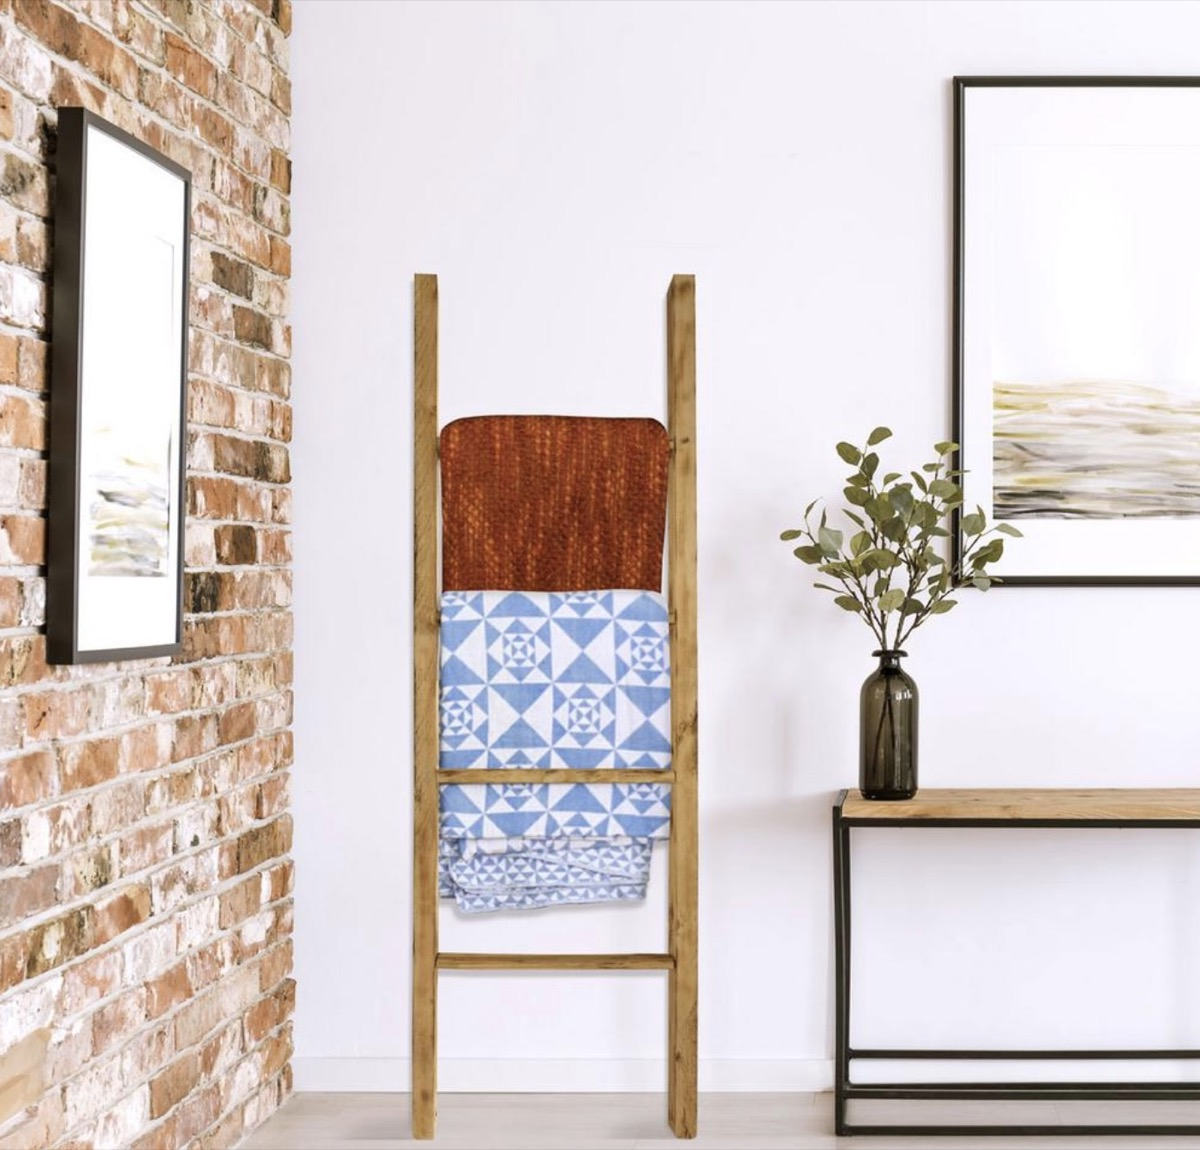 wooden ladder leaning against white wall adjacent to brick wall, rustic farmhouse decor